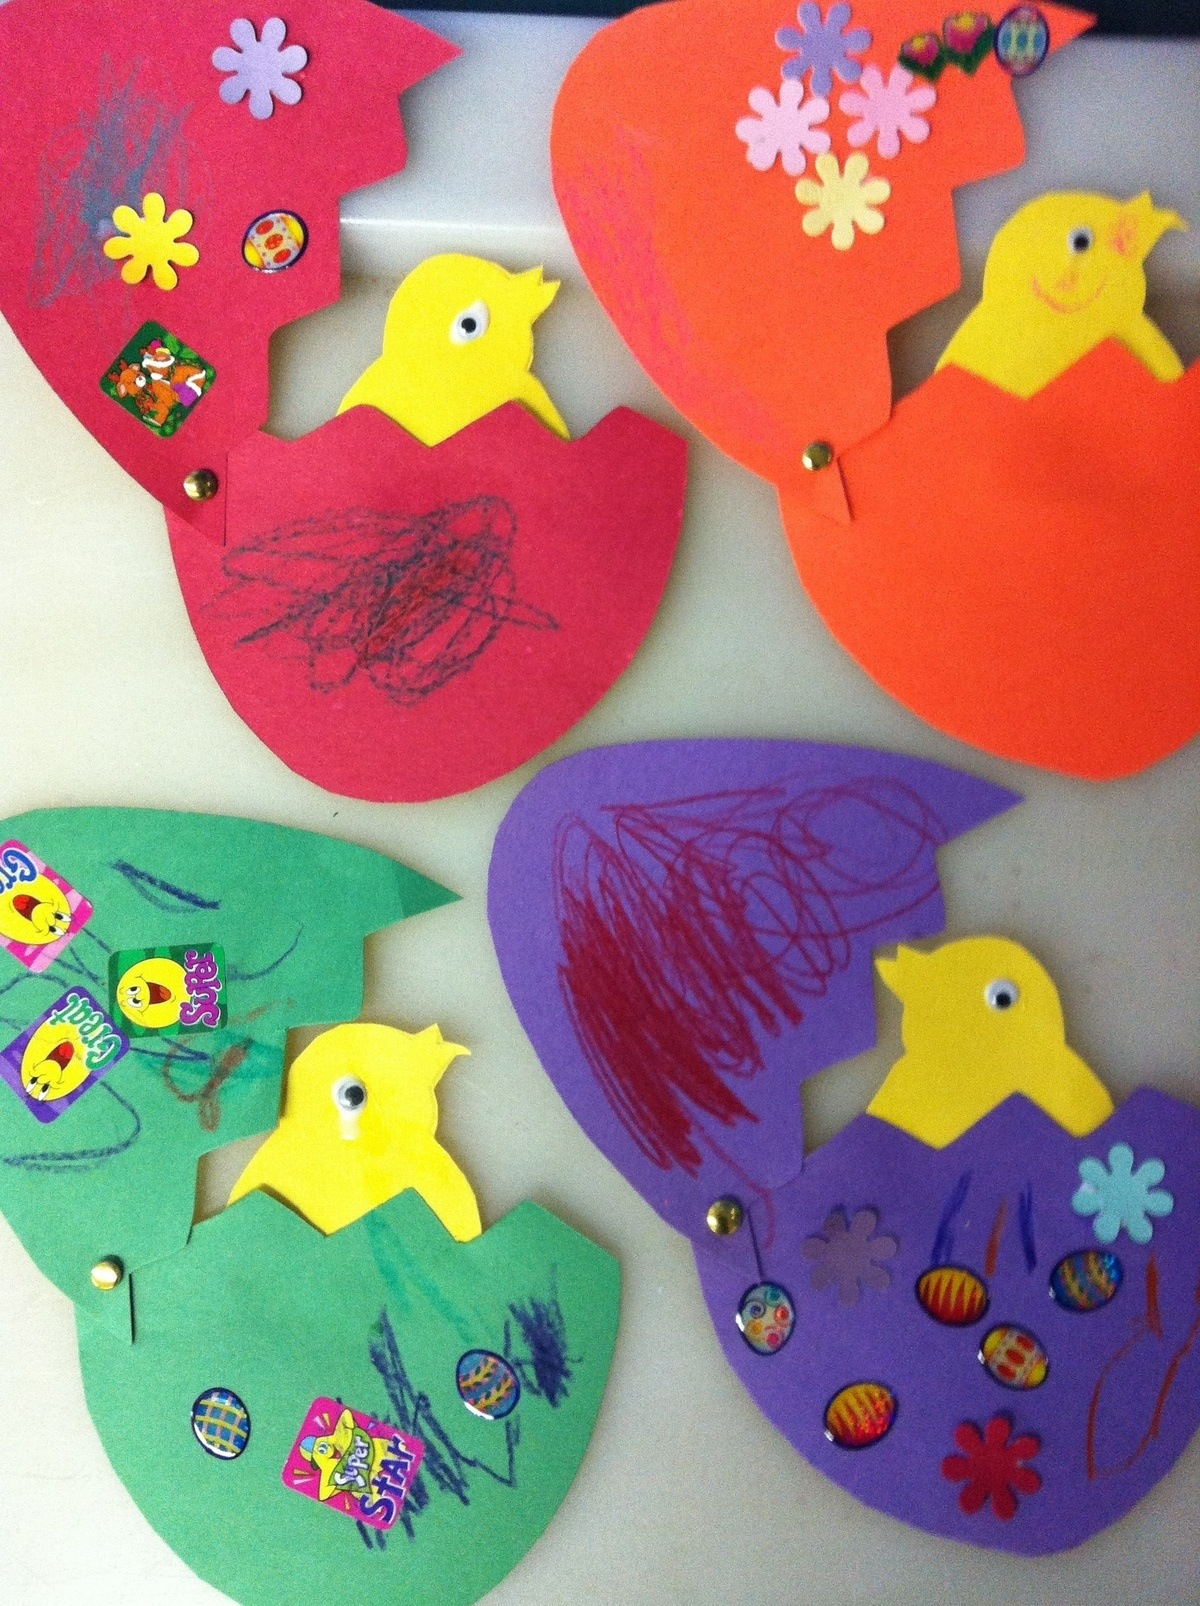 Easter arts and crafts ideas for children - 20130306 185349 Jpg